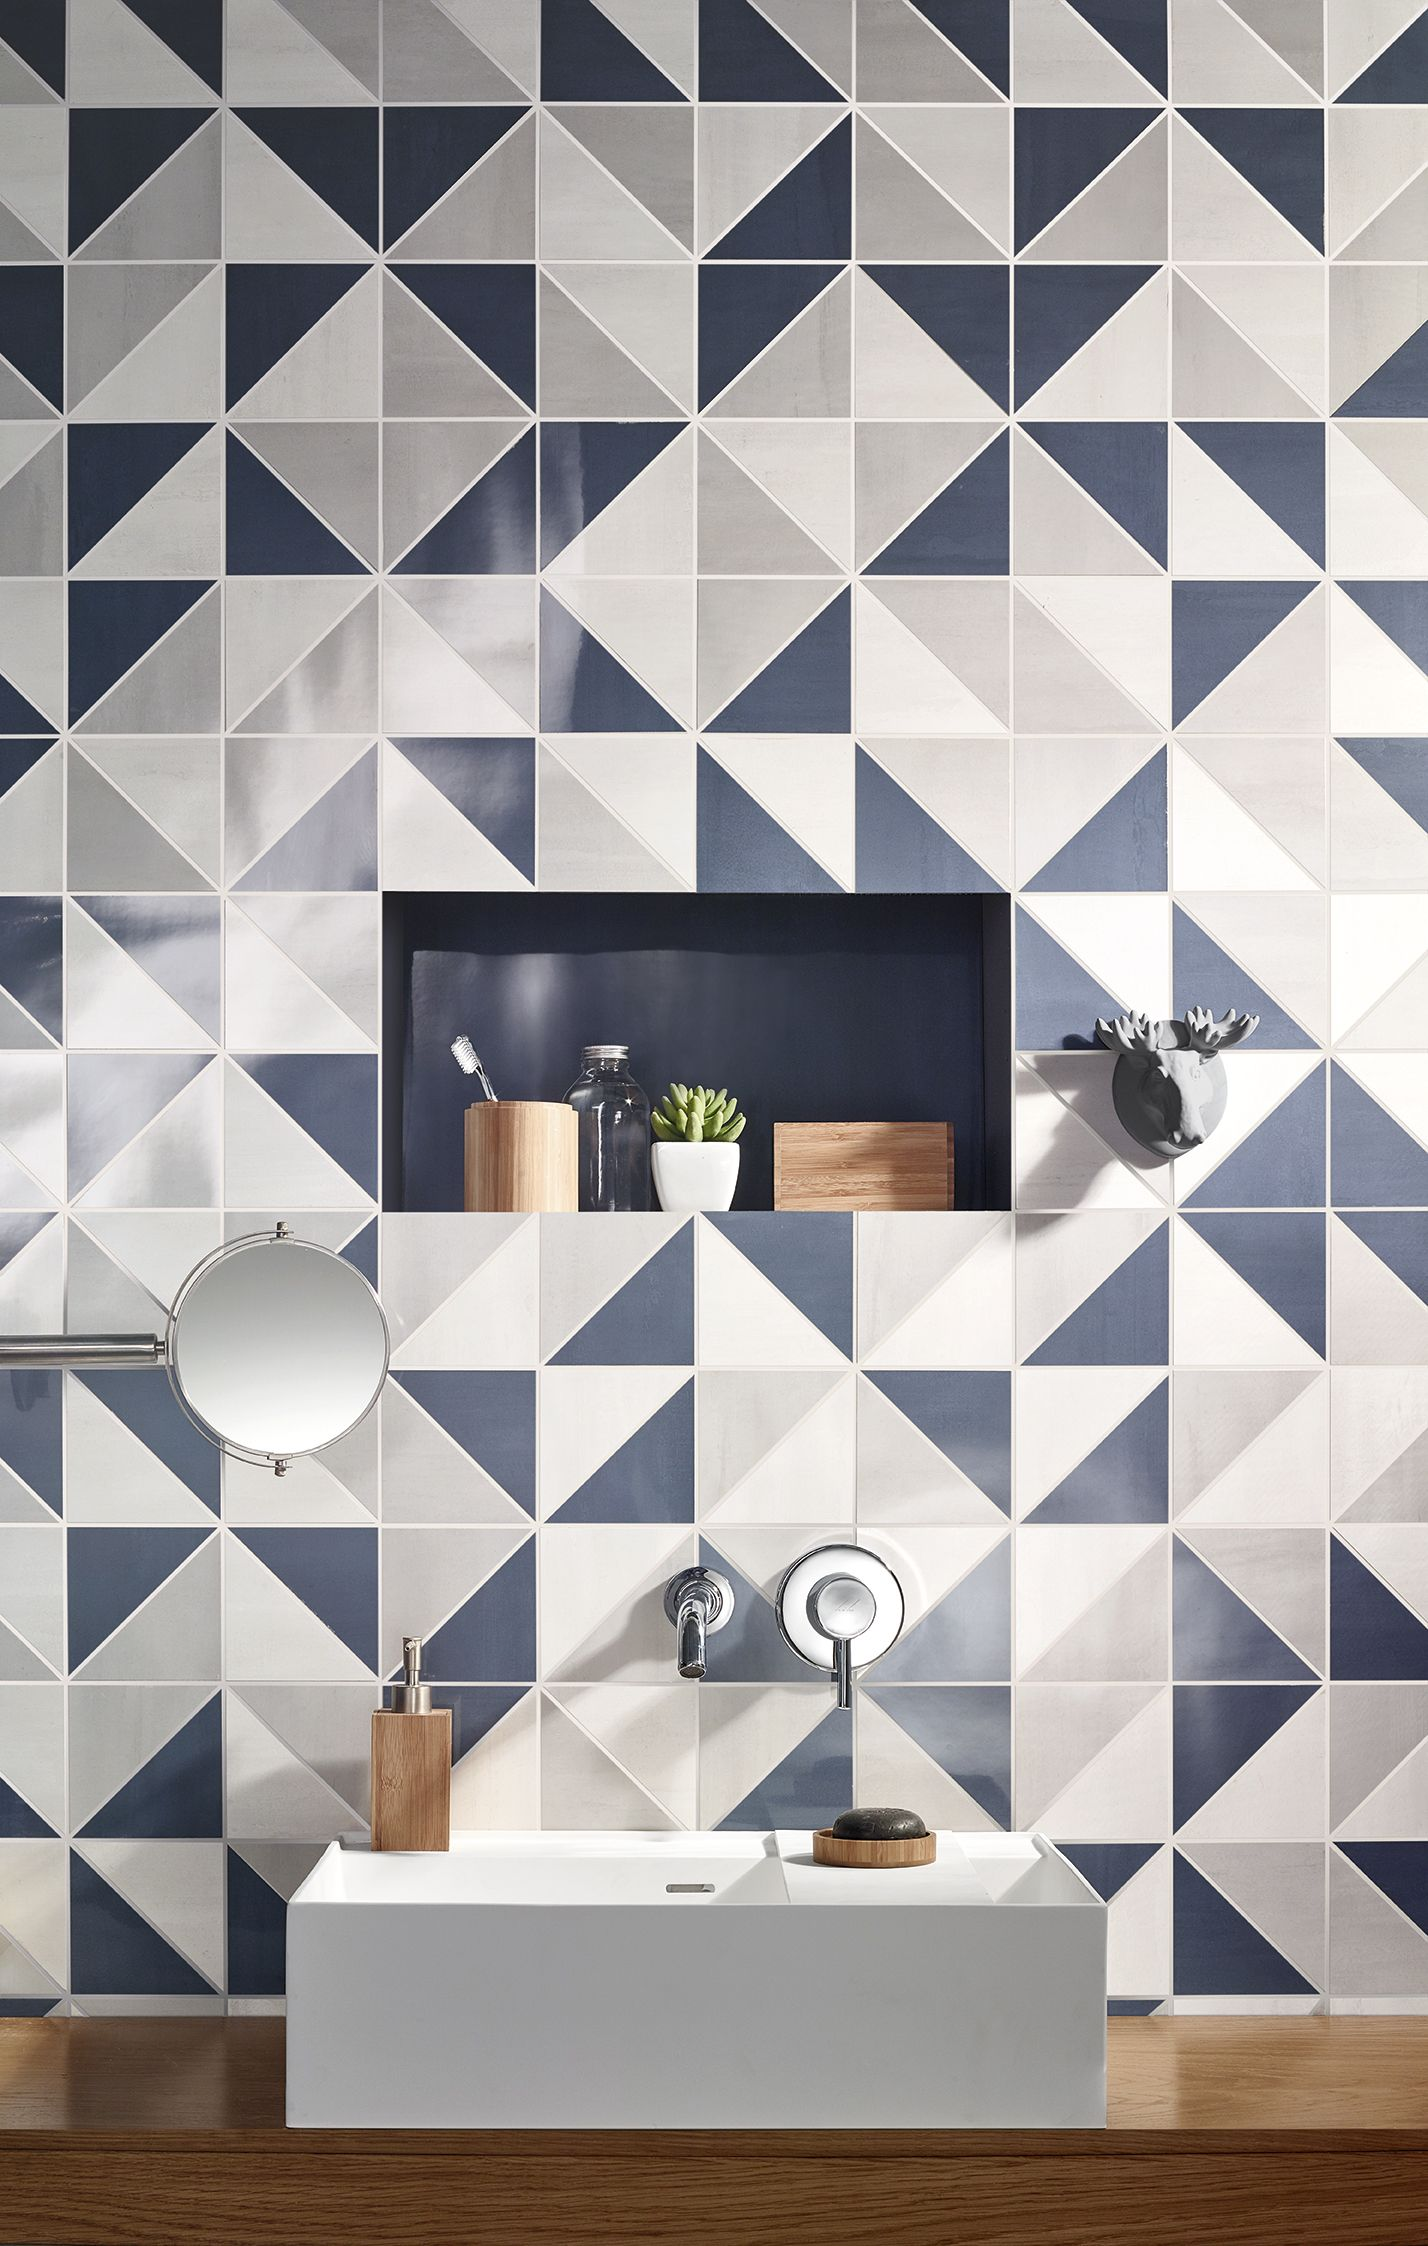 Contemporary geometric tile design by exto bathroom tiles by aroma wall tiles love ceramic tiles white paste wall aroma by gres panaria portugal s dailygadgetfo Images